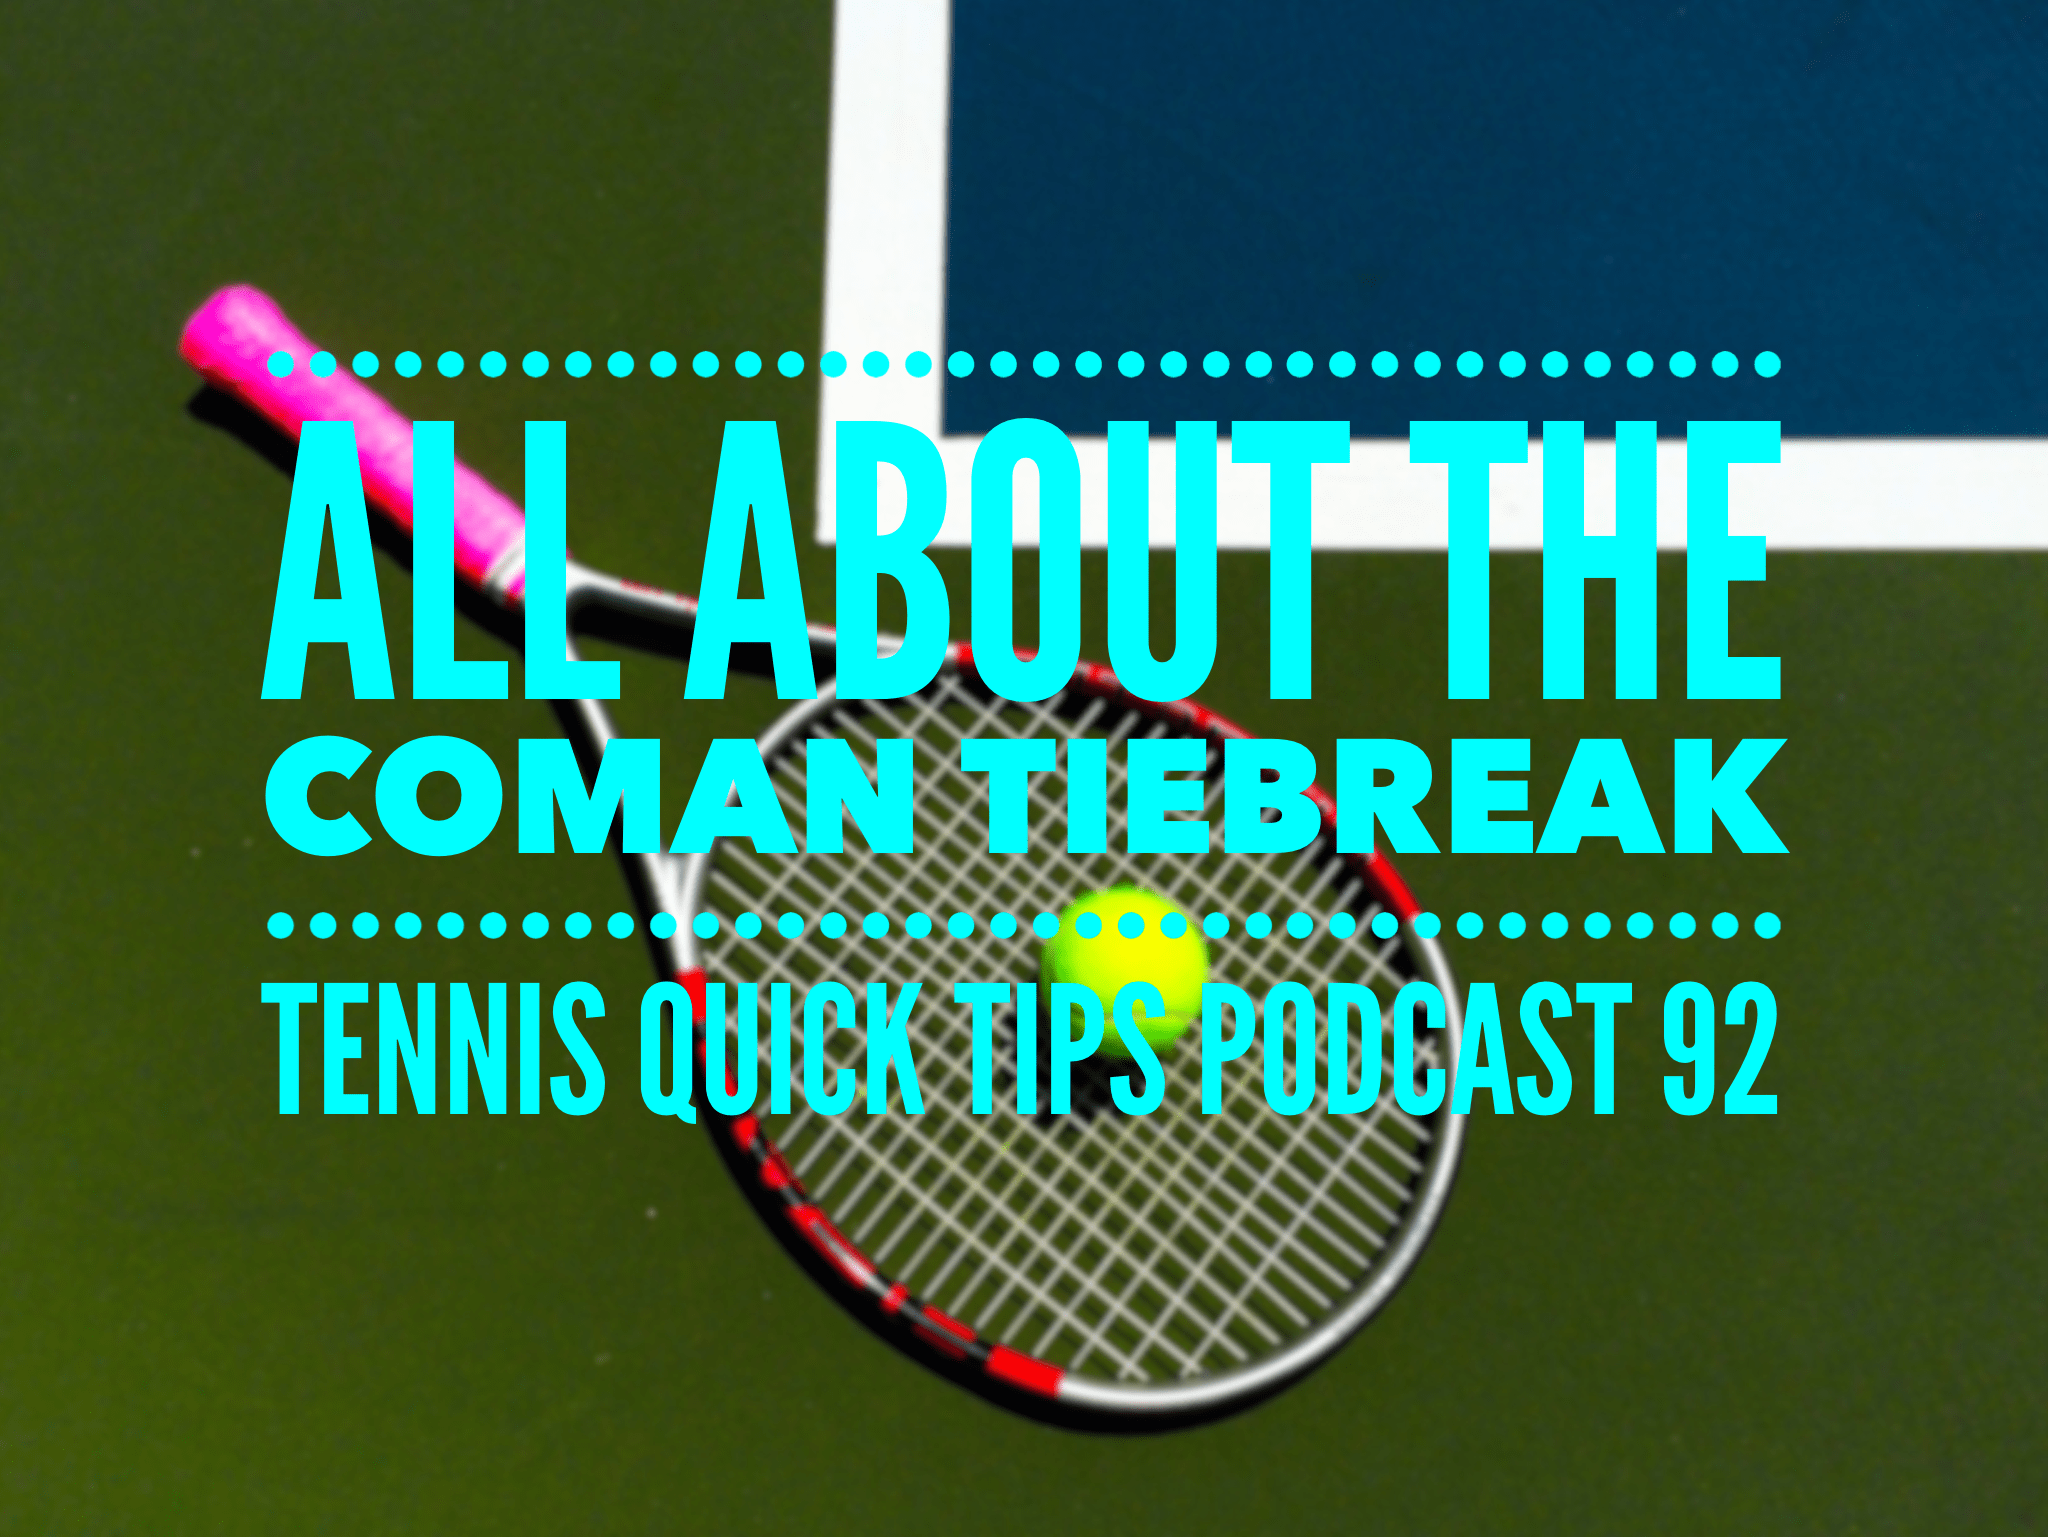 All About The Coman Tiebreak - Tennis Quick Tips Podcast 92